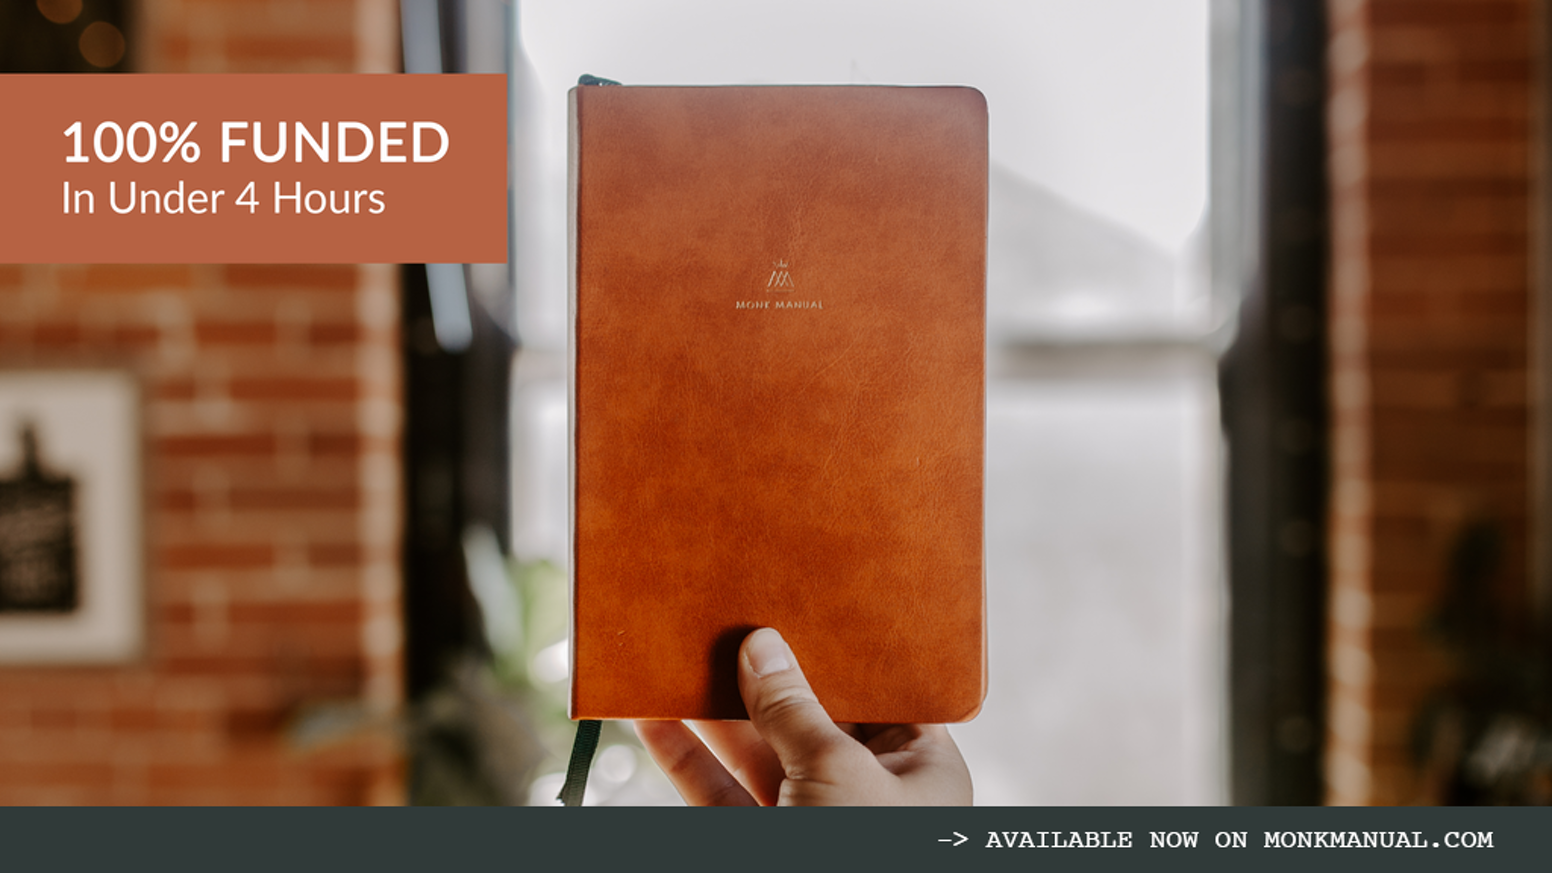 A 90-day planner that helps you focus on the most important things, so you can live with greater peace, purpose and productivity.